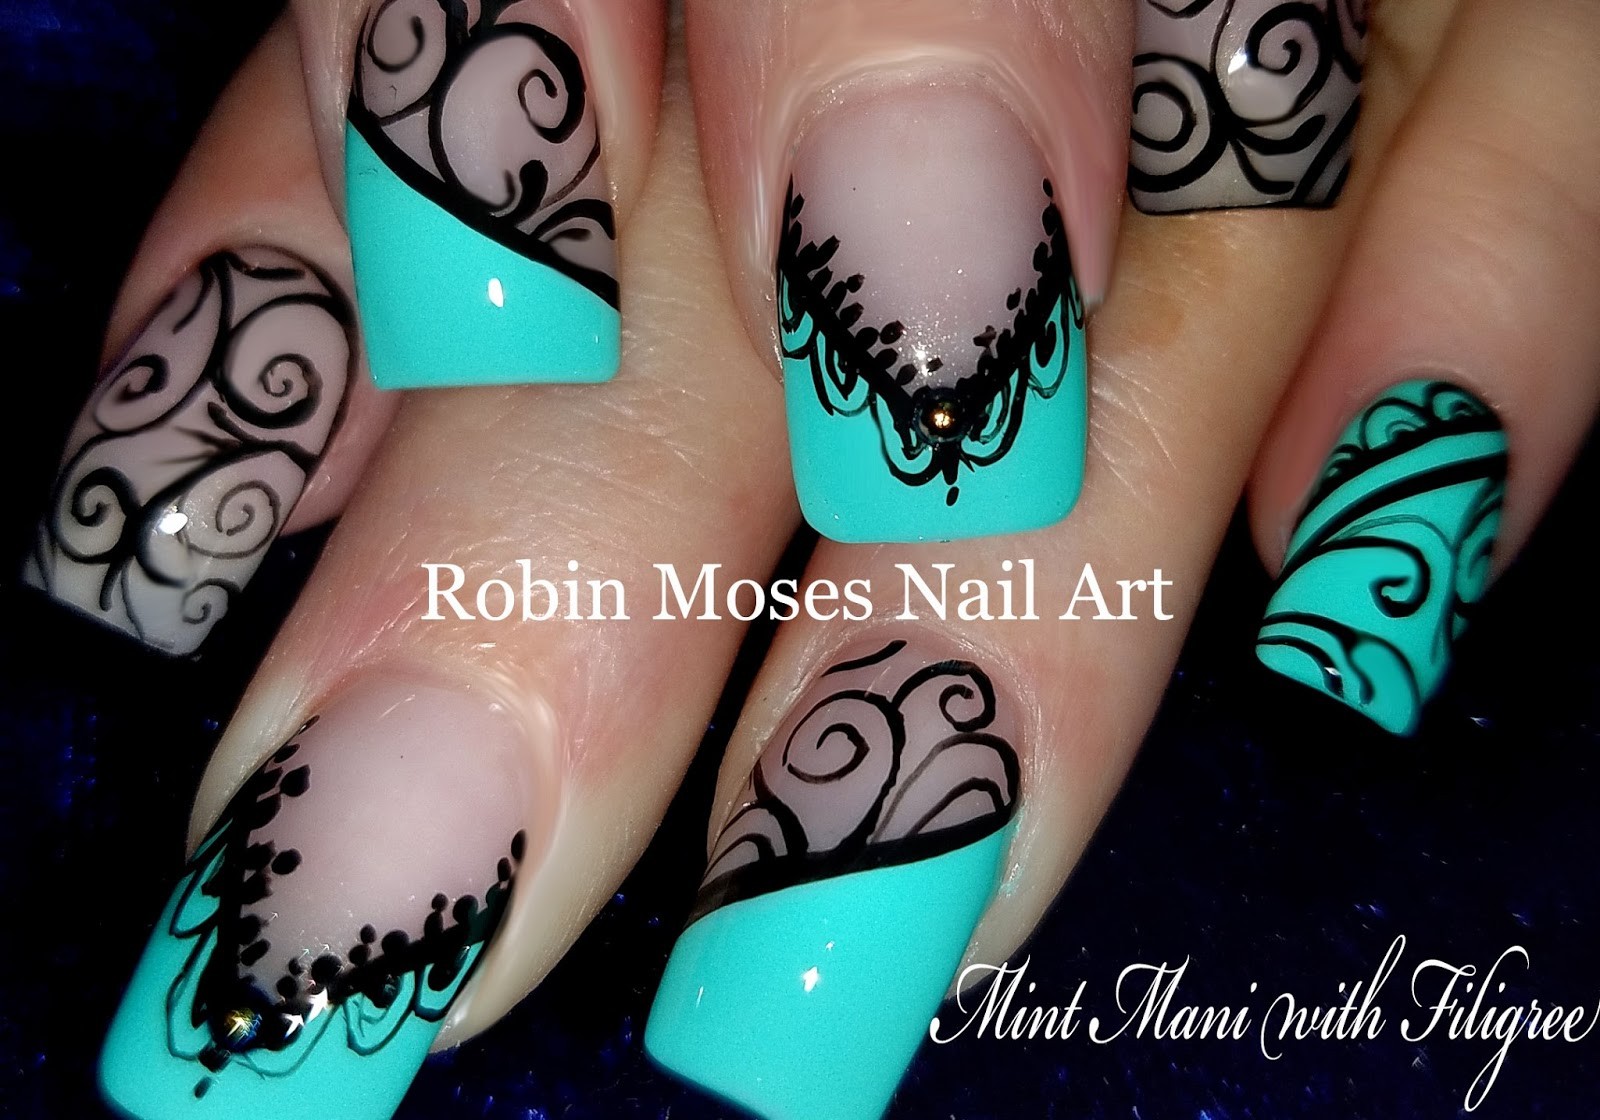 Nail Art By Robin Moses Black Lace Mint Mani Diy Hand Painted